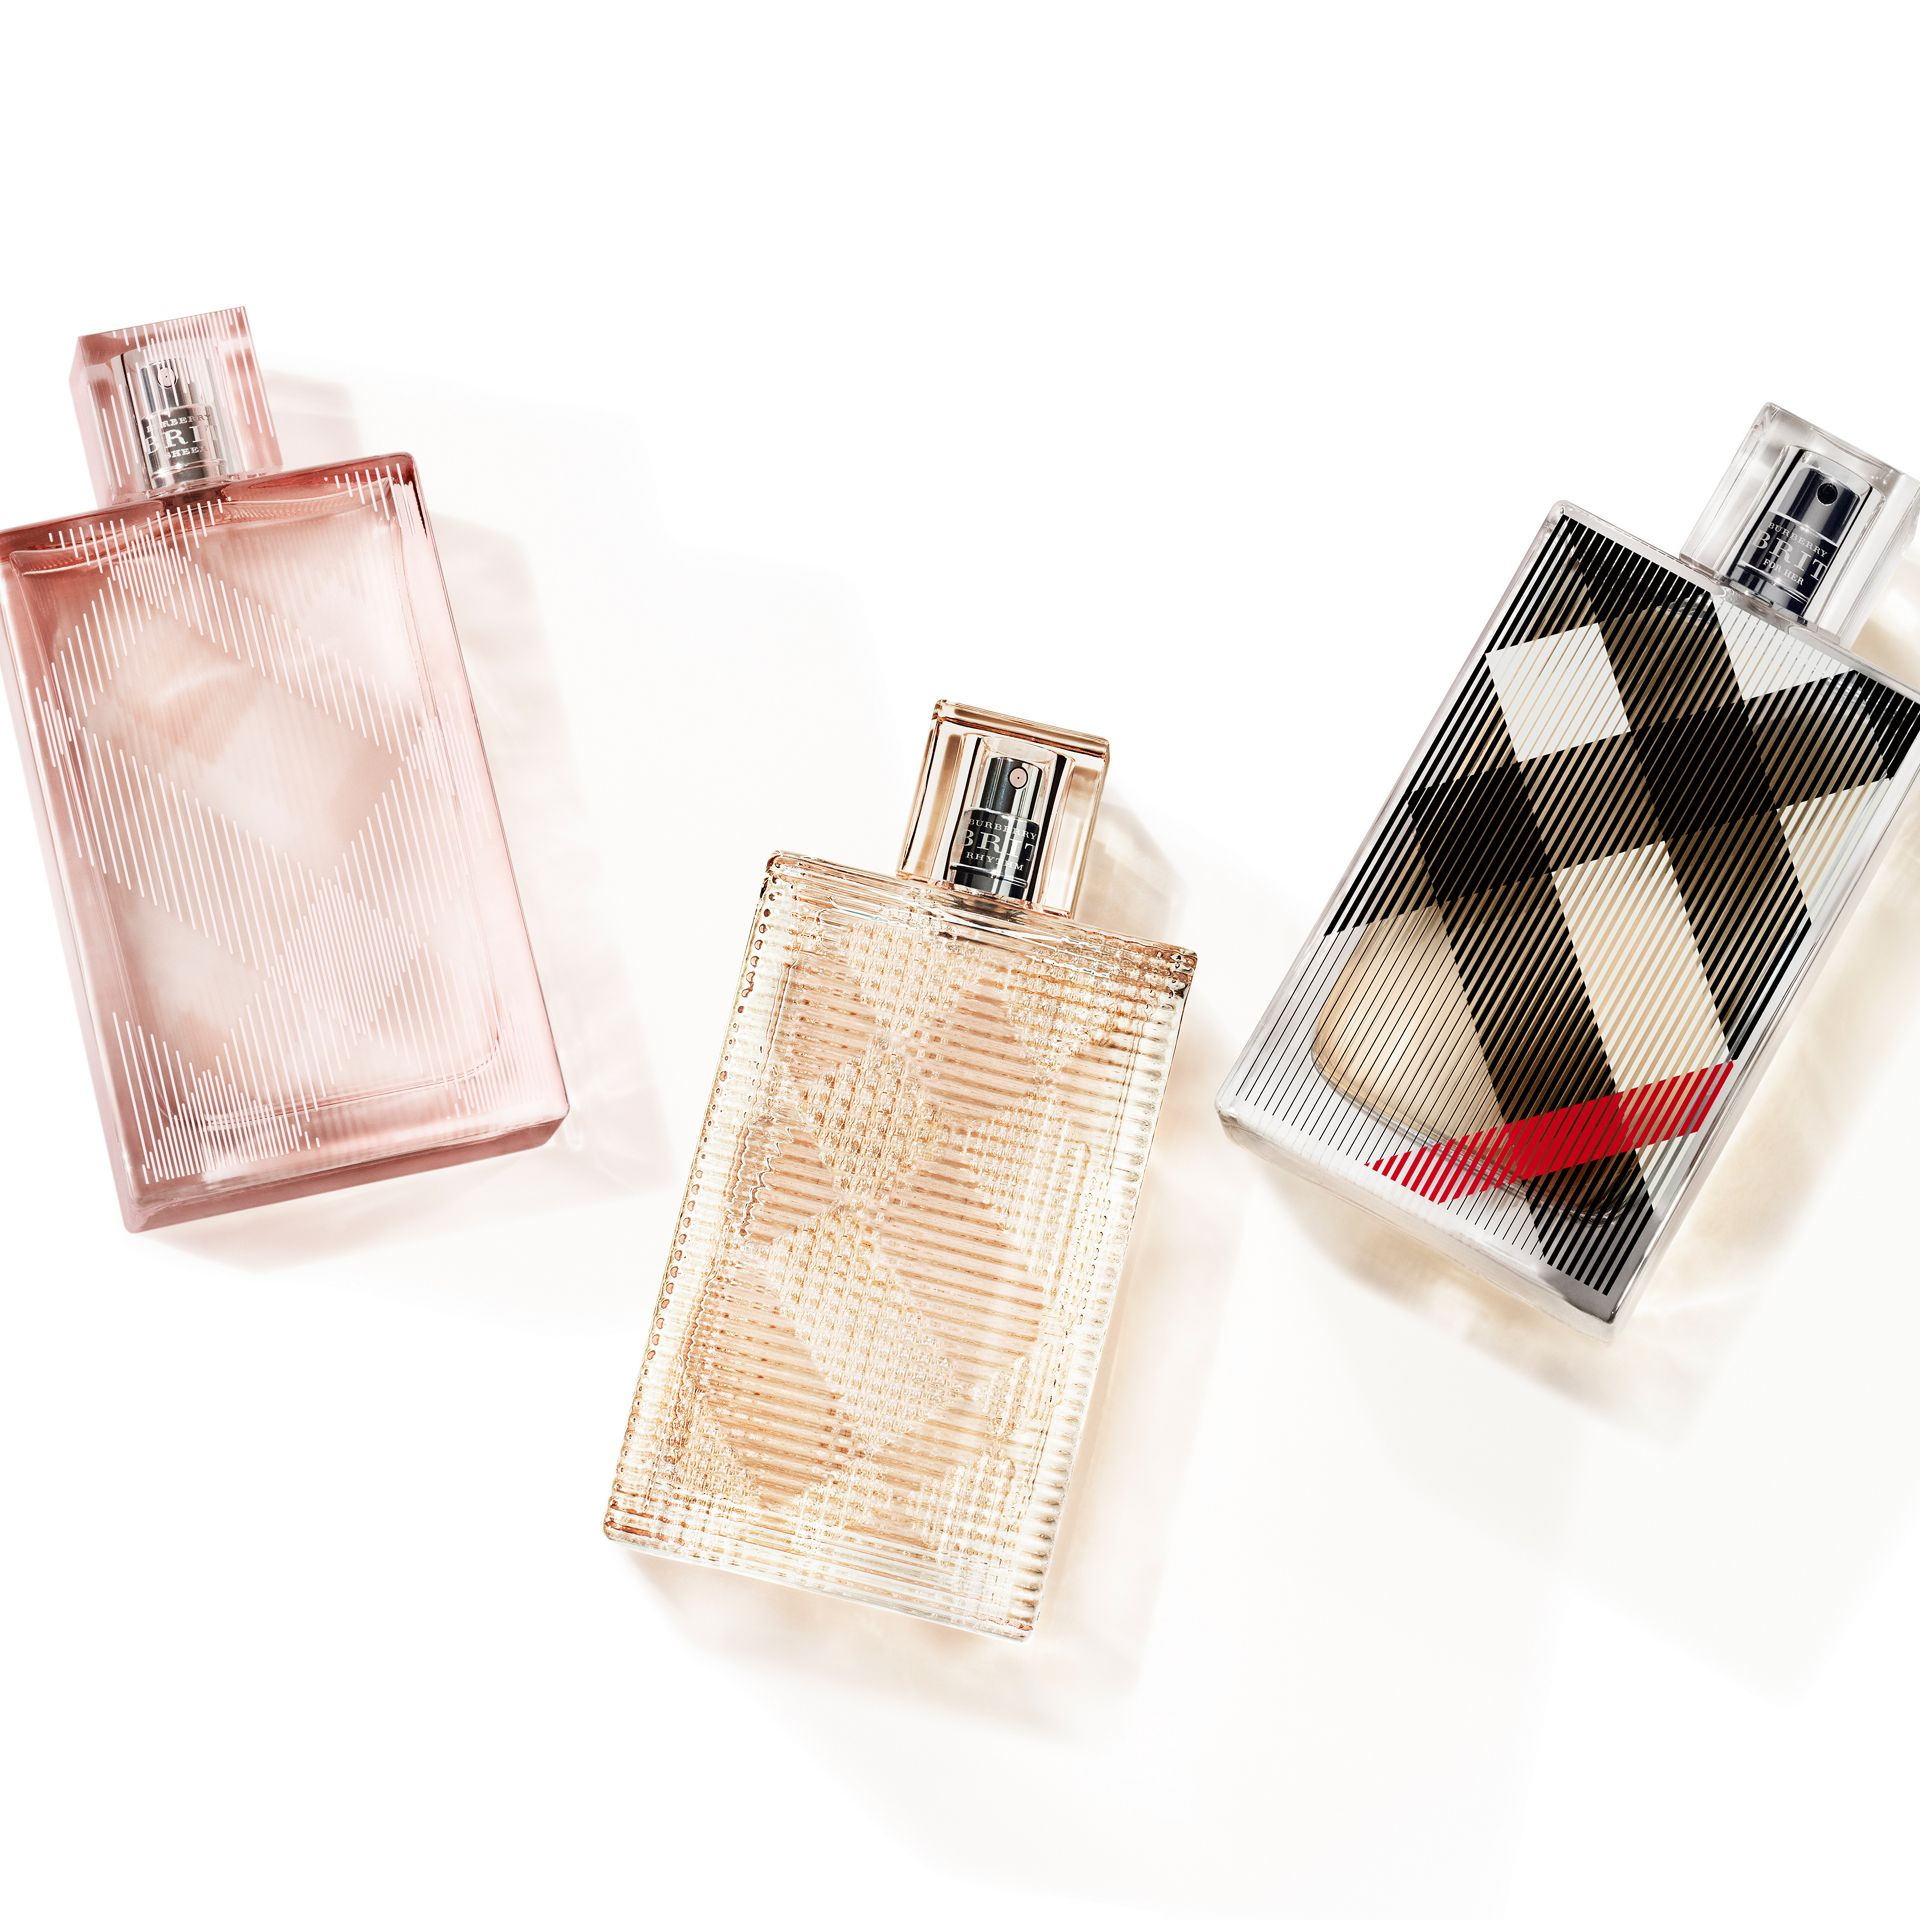 Burberry Brit Sheer Eau de Toilette 200ml - Women | Burberry Canada - gallery image 3